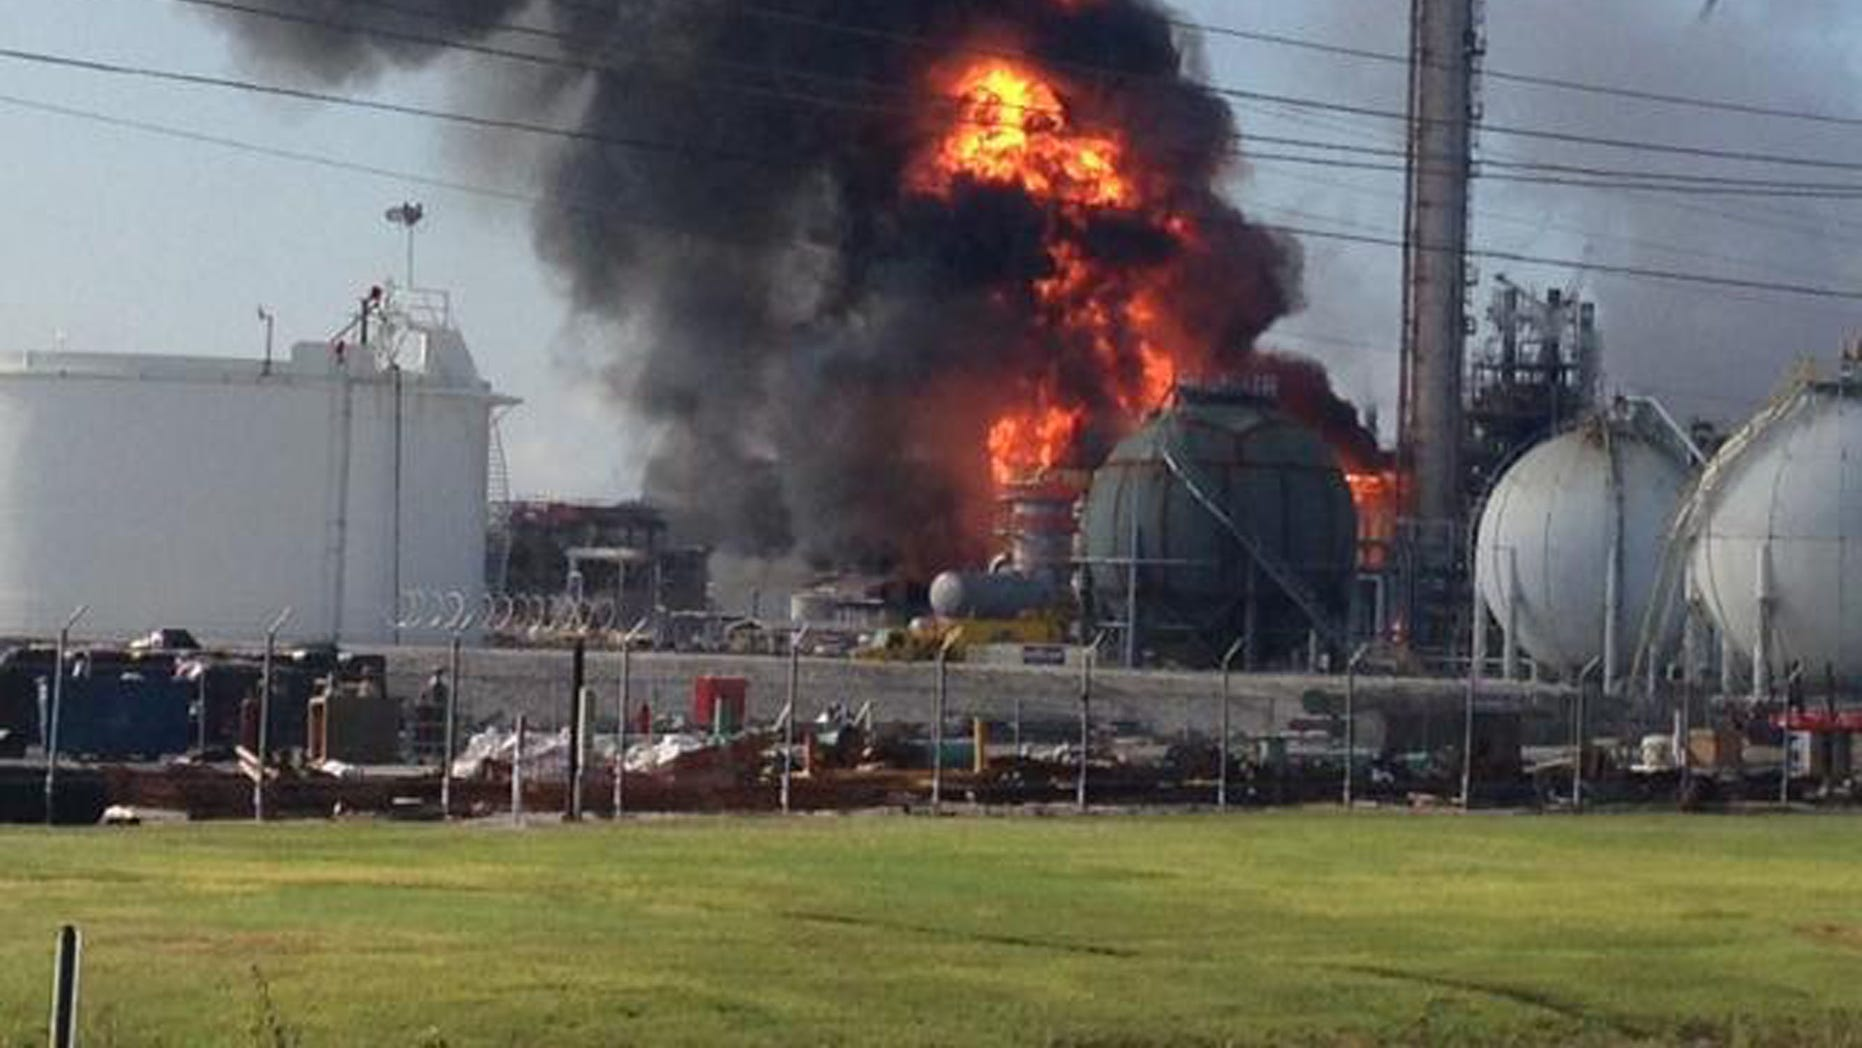 June 13, 2013: This photo provided by Ryan Meador shows an explosion at The Williams Companies Inc. plant in the Ascension Parish town of Geismar La.